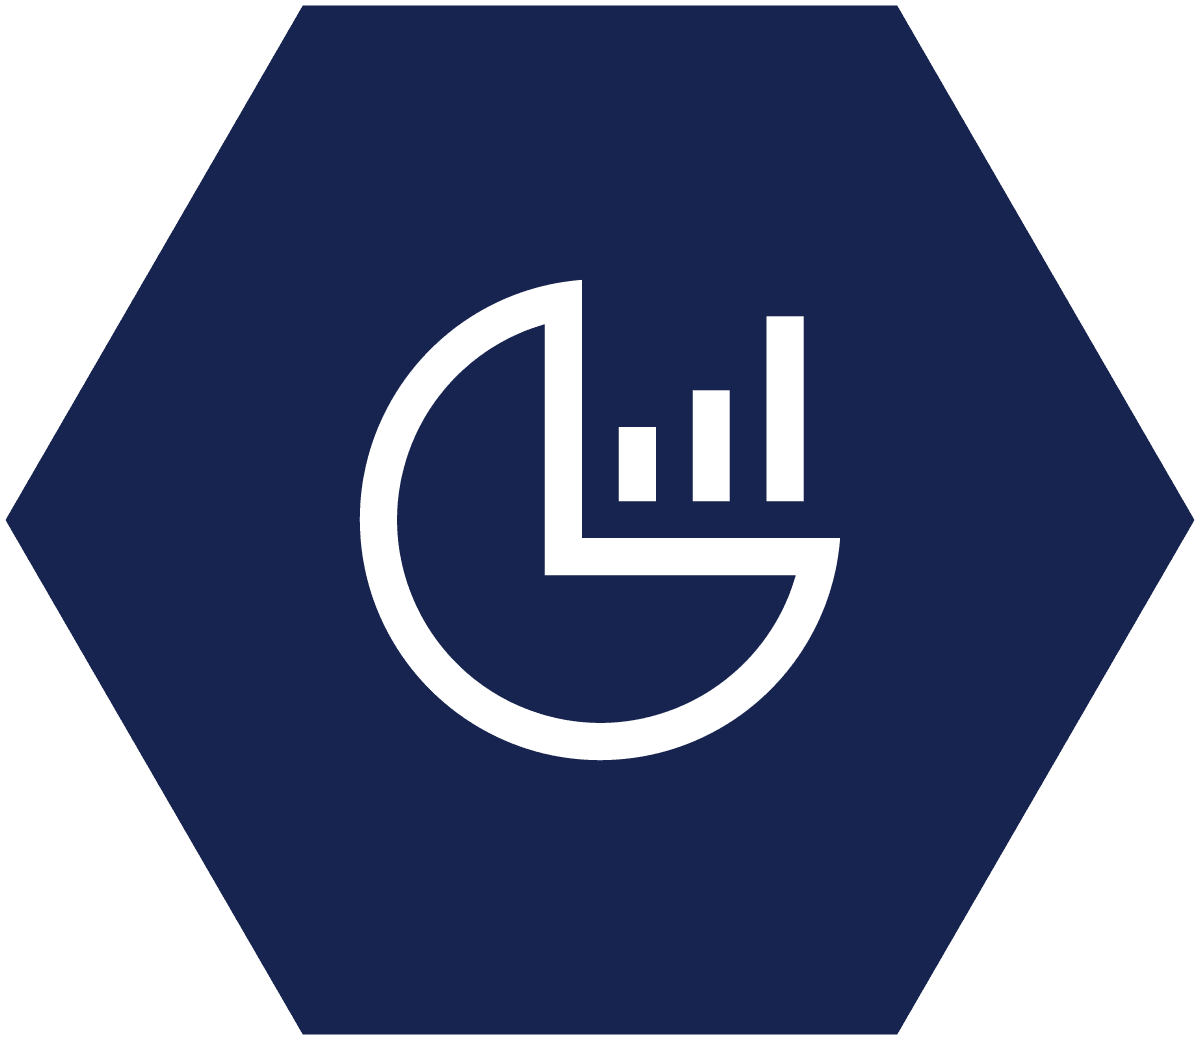 Dynamics 365 for Sales pic logo